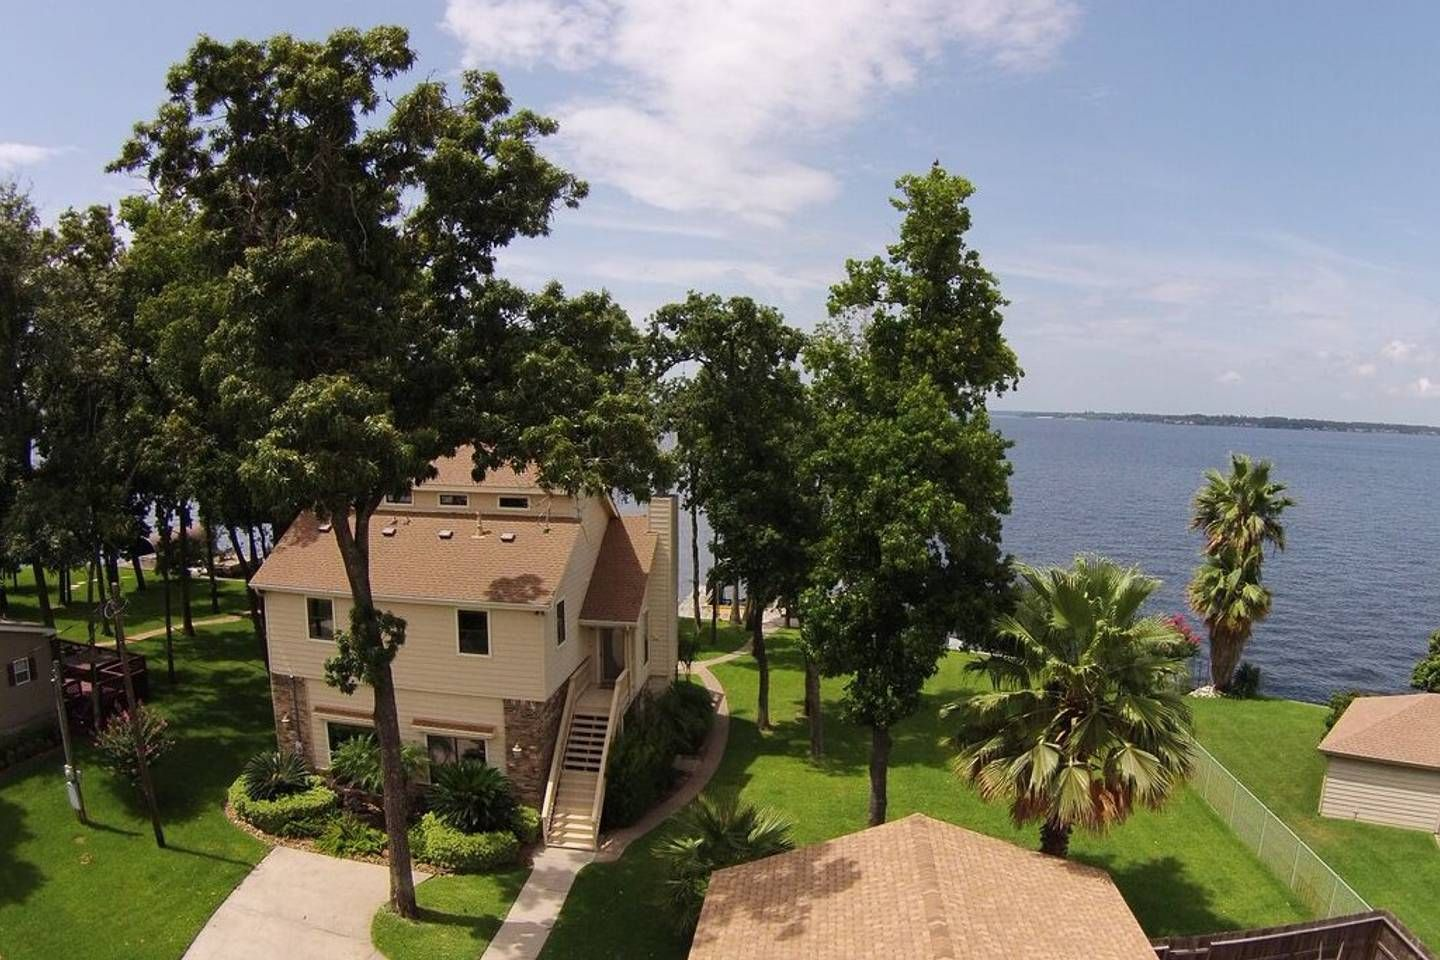 Lake Conroe Waterfront Home Houses For Rent In Montgomery Texas United States Vacation Home Waterfront Homes Renting A House